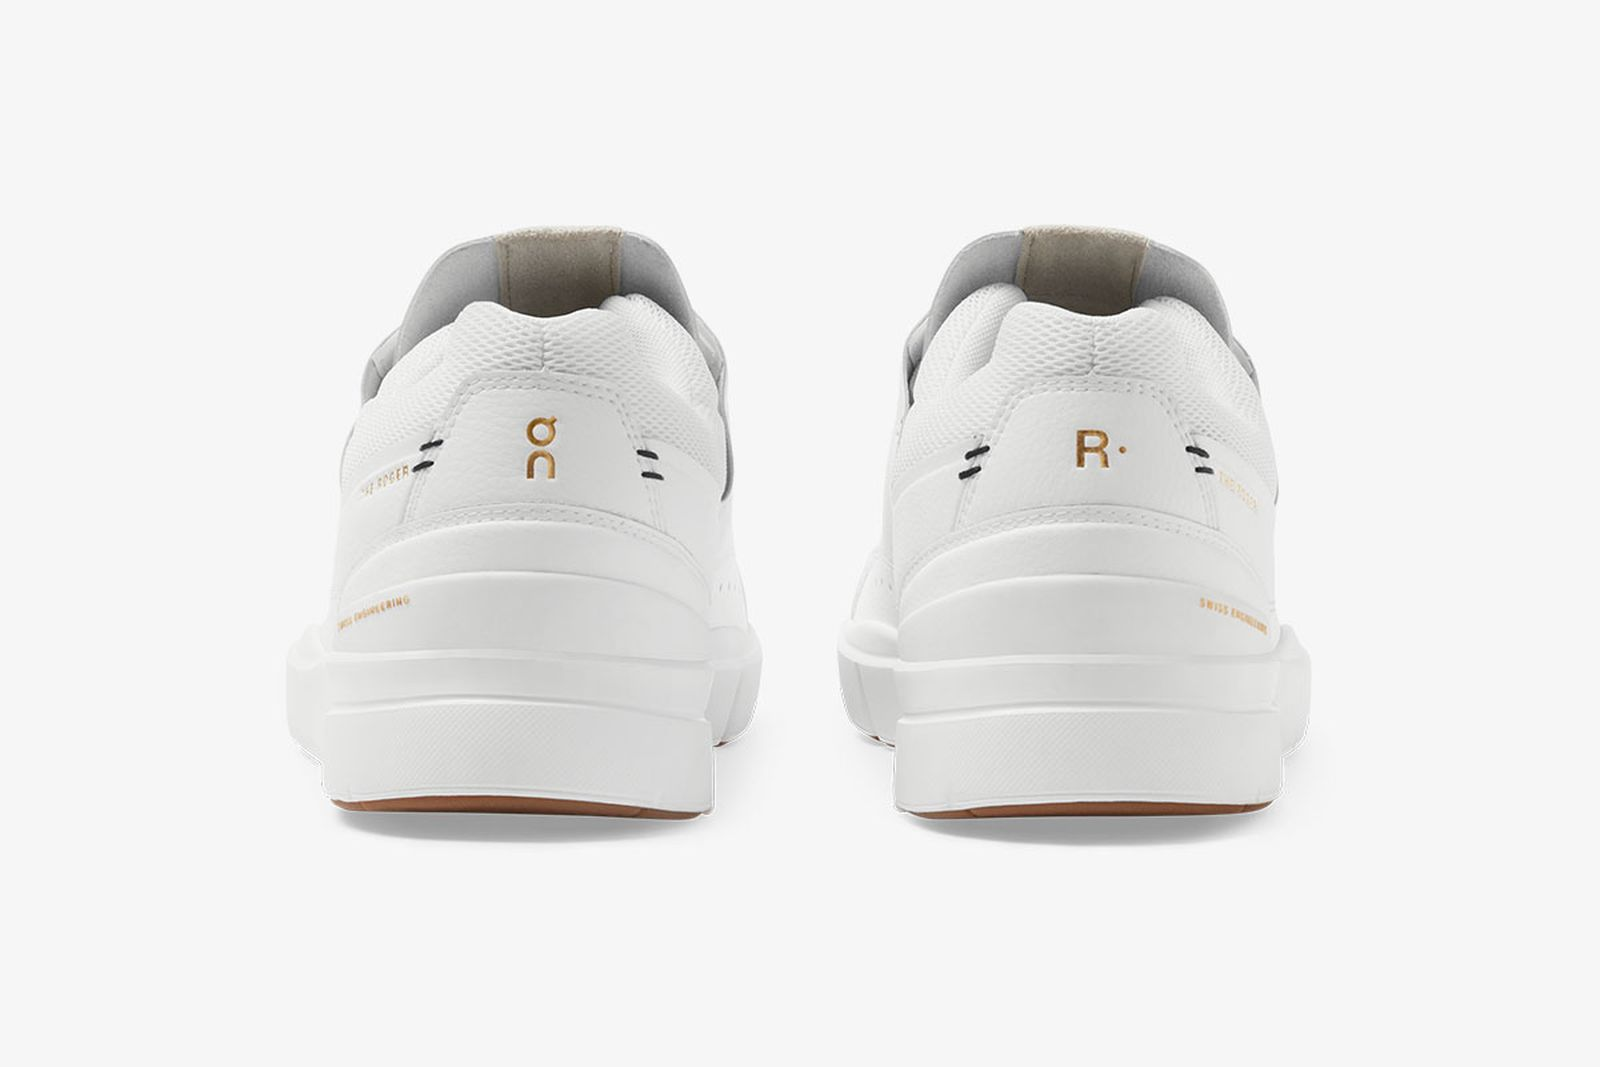 on-roger-federer-the-roger-release-date-price-product-01